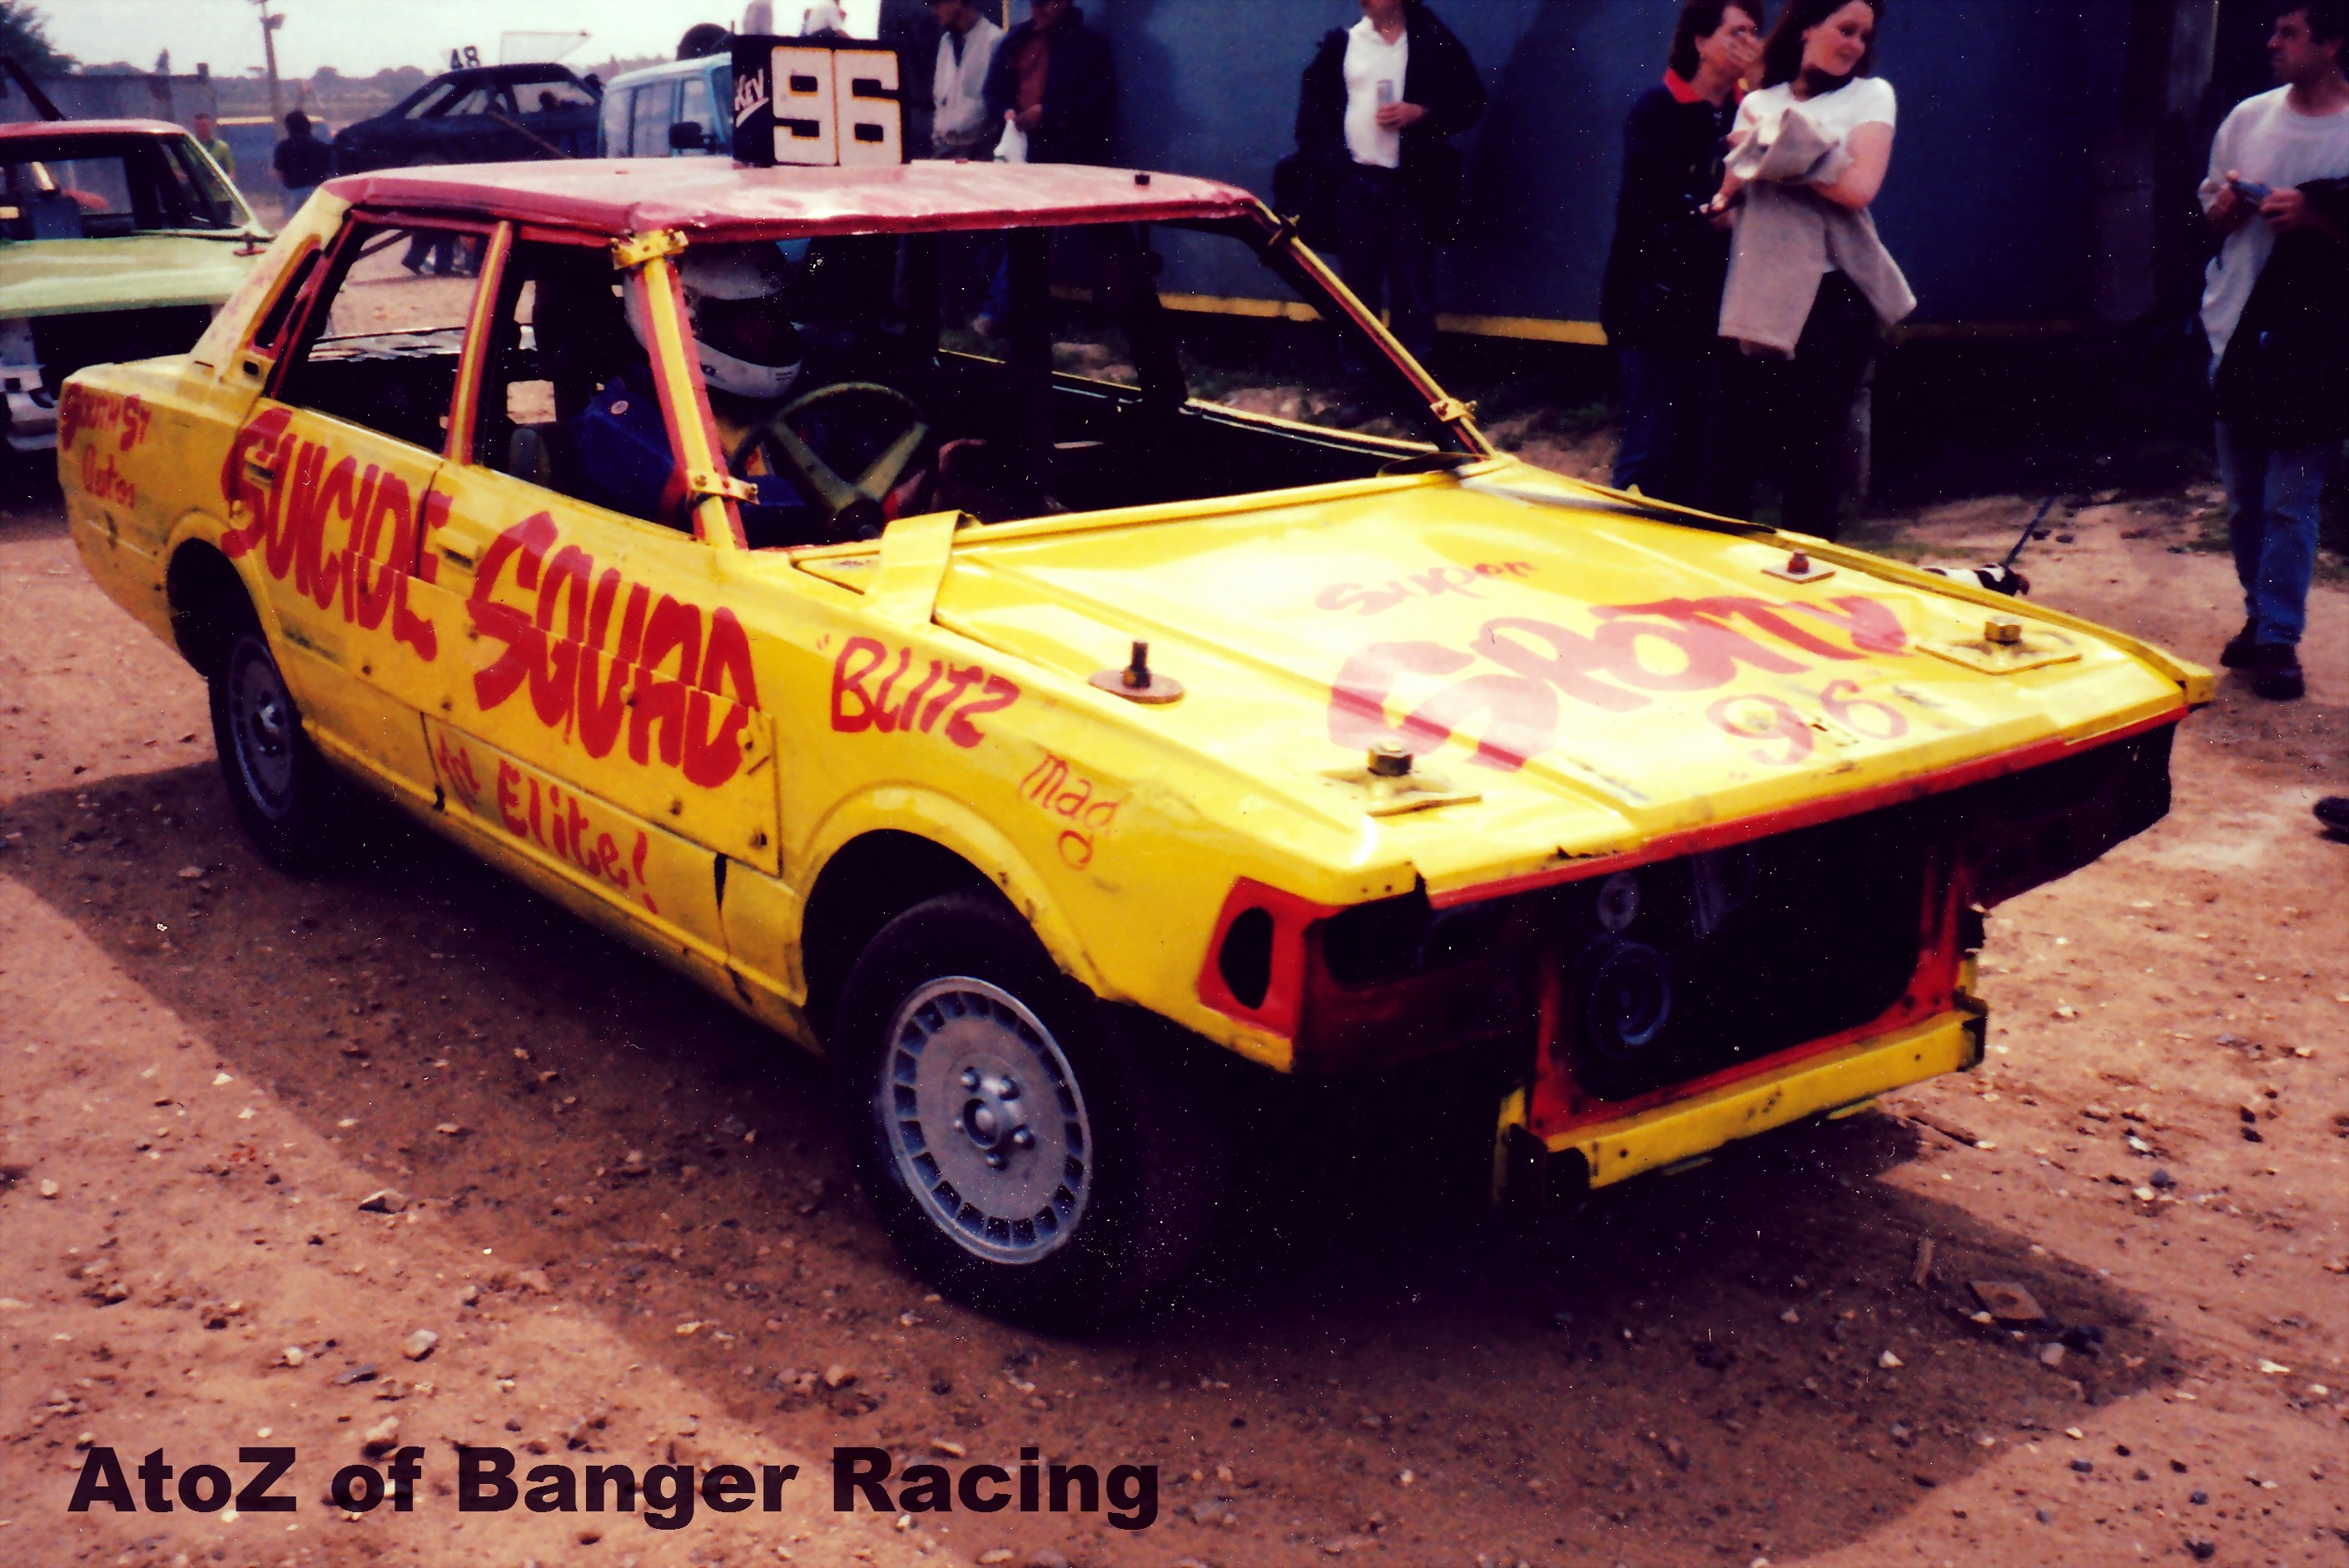 3b144d89 0637 466d Bdab 72c60606ce8a A To Z Of Banger Racing